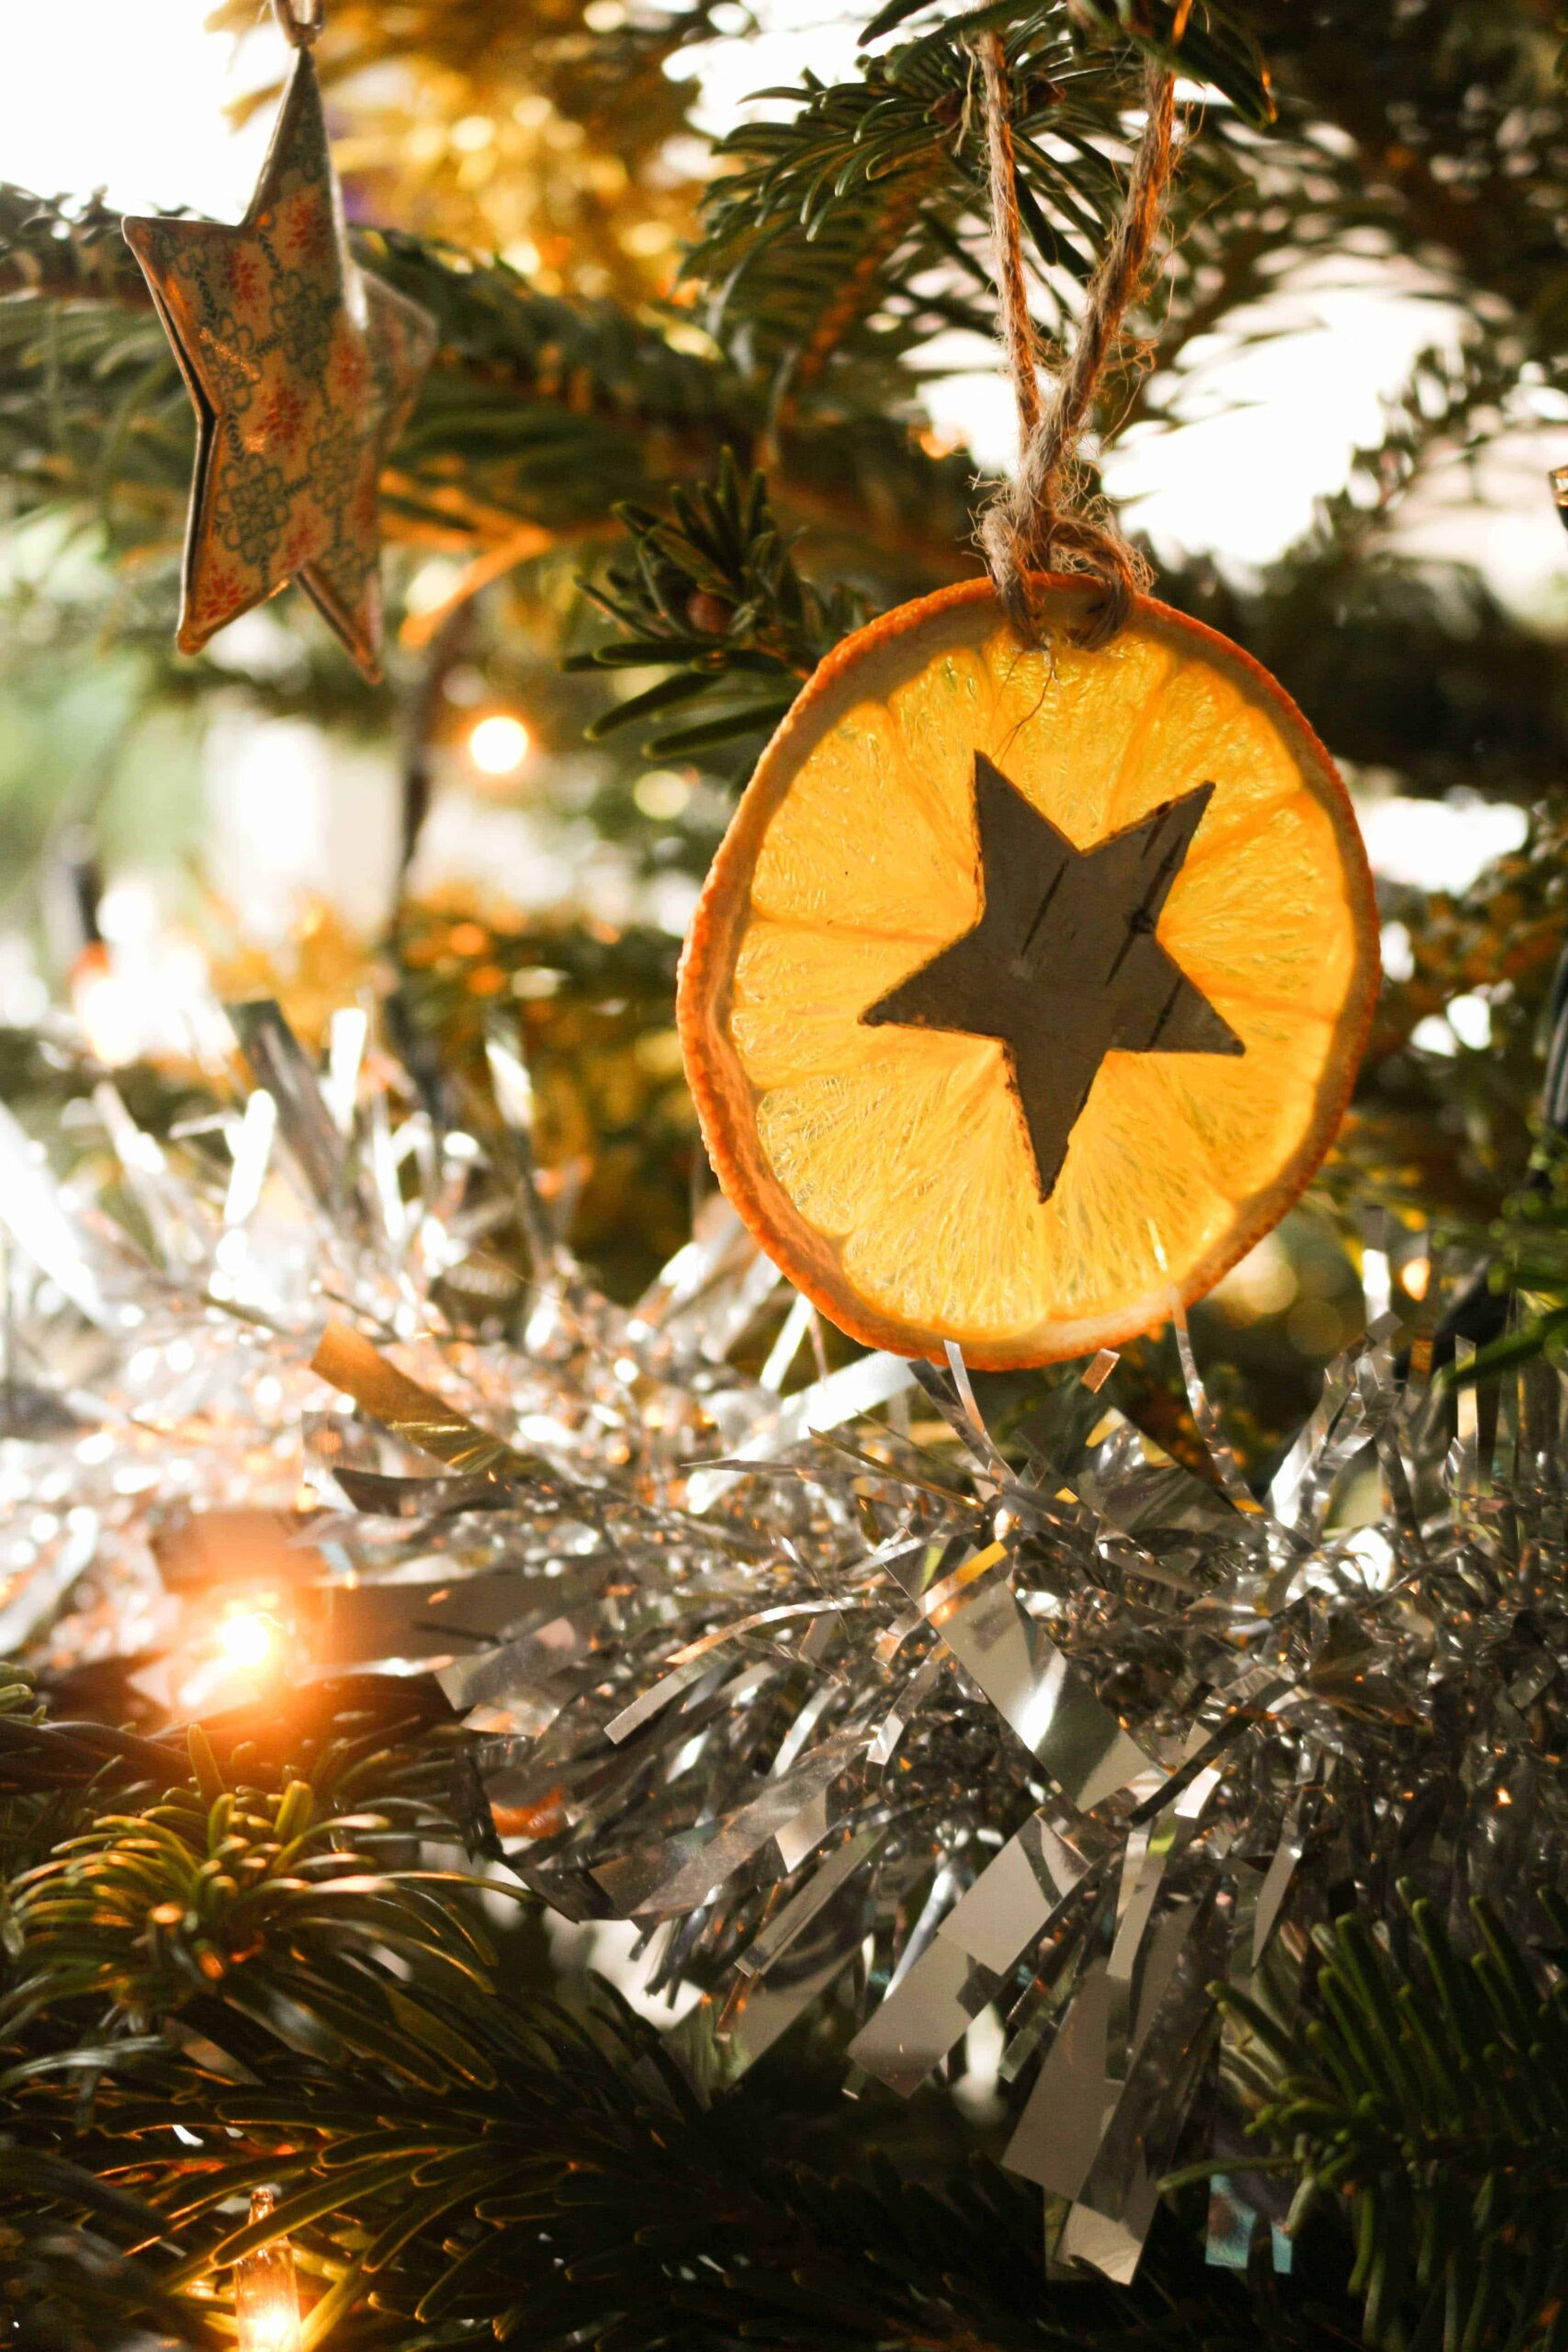 Diy Orange Star Handmade Christmas Decorations Thimble And Twig